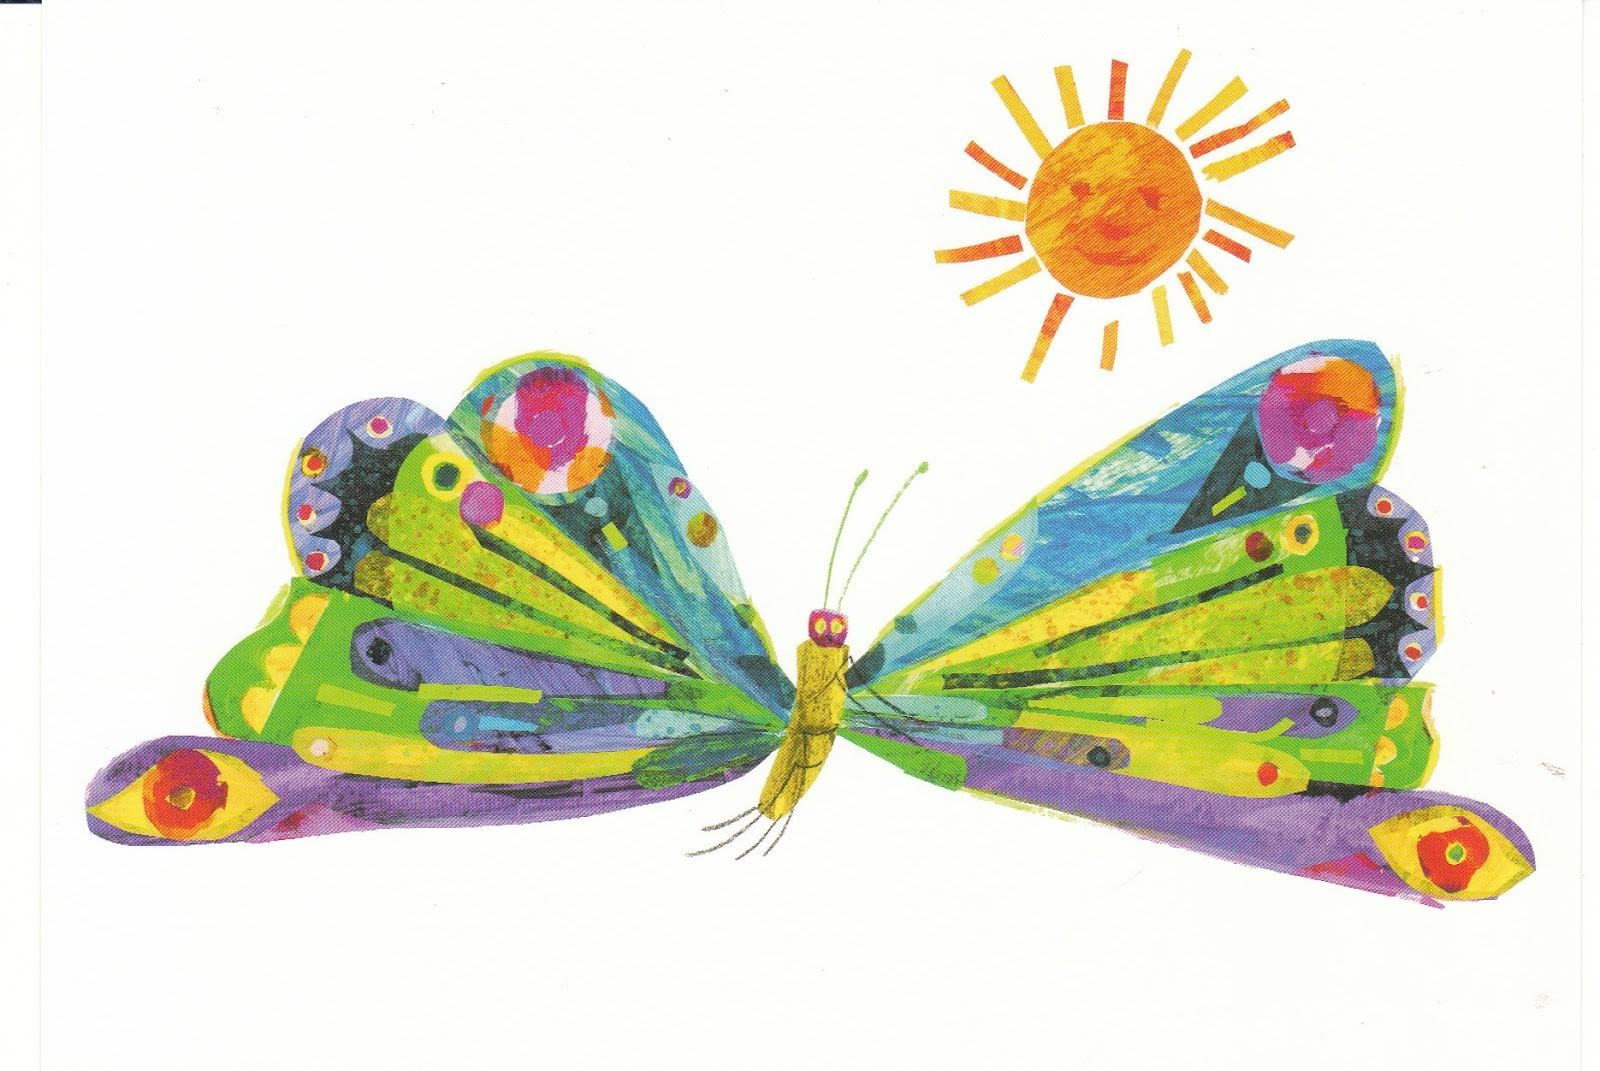 View From The Birdhouse: Eric Carle Exhibit At The High Museum Of regarding Eric Carle Wall Art